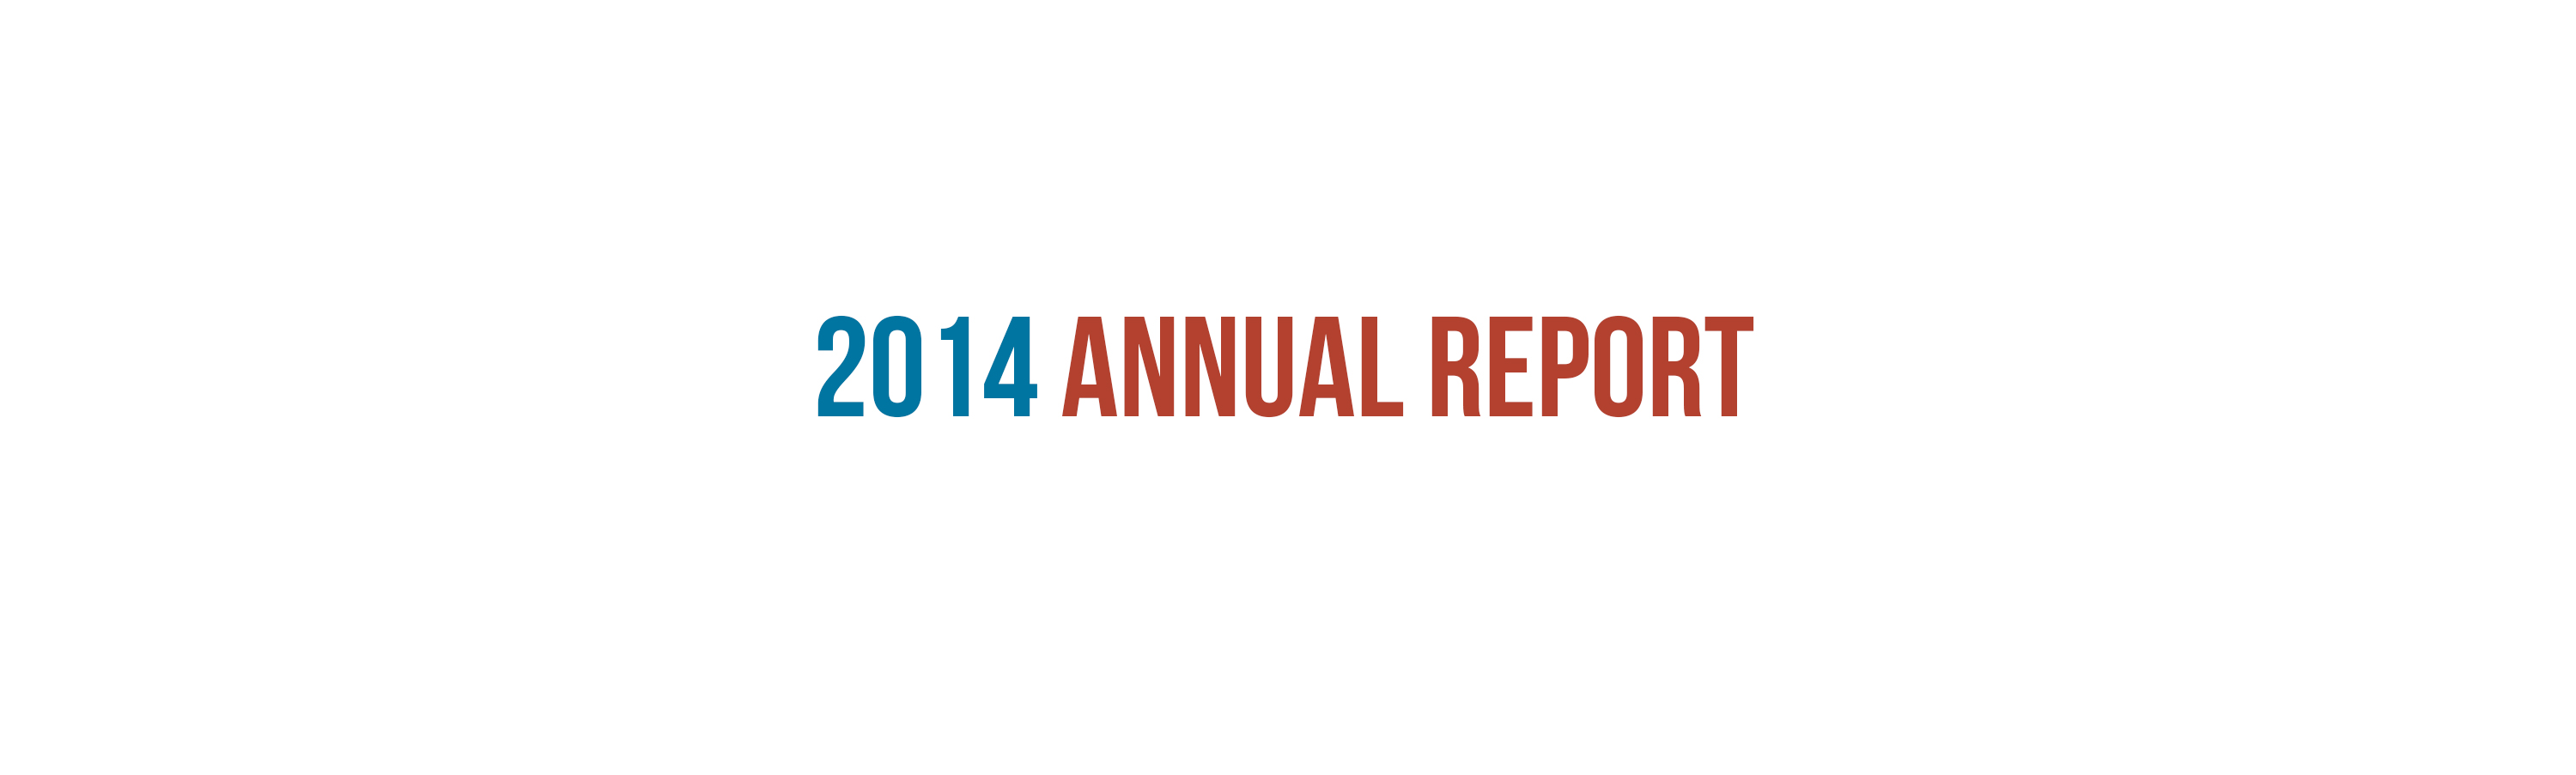 Annual Report Graphic Design